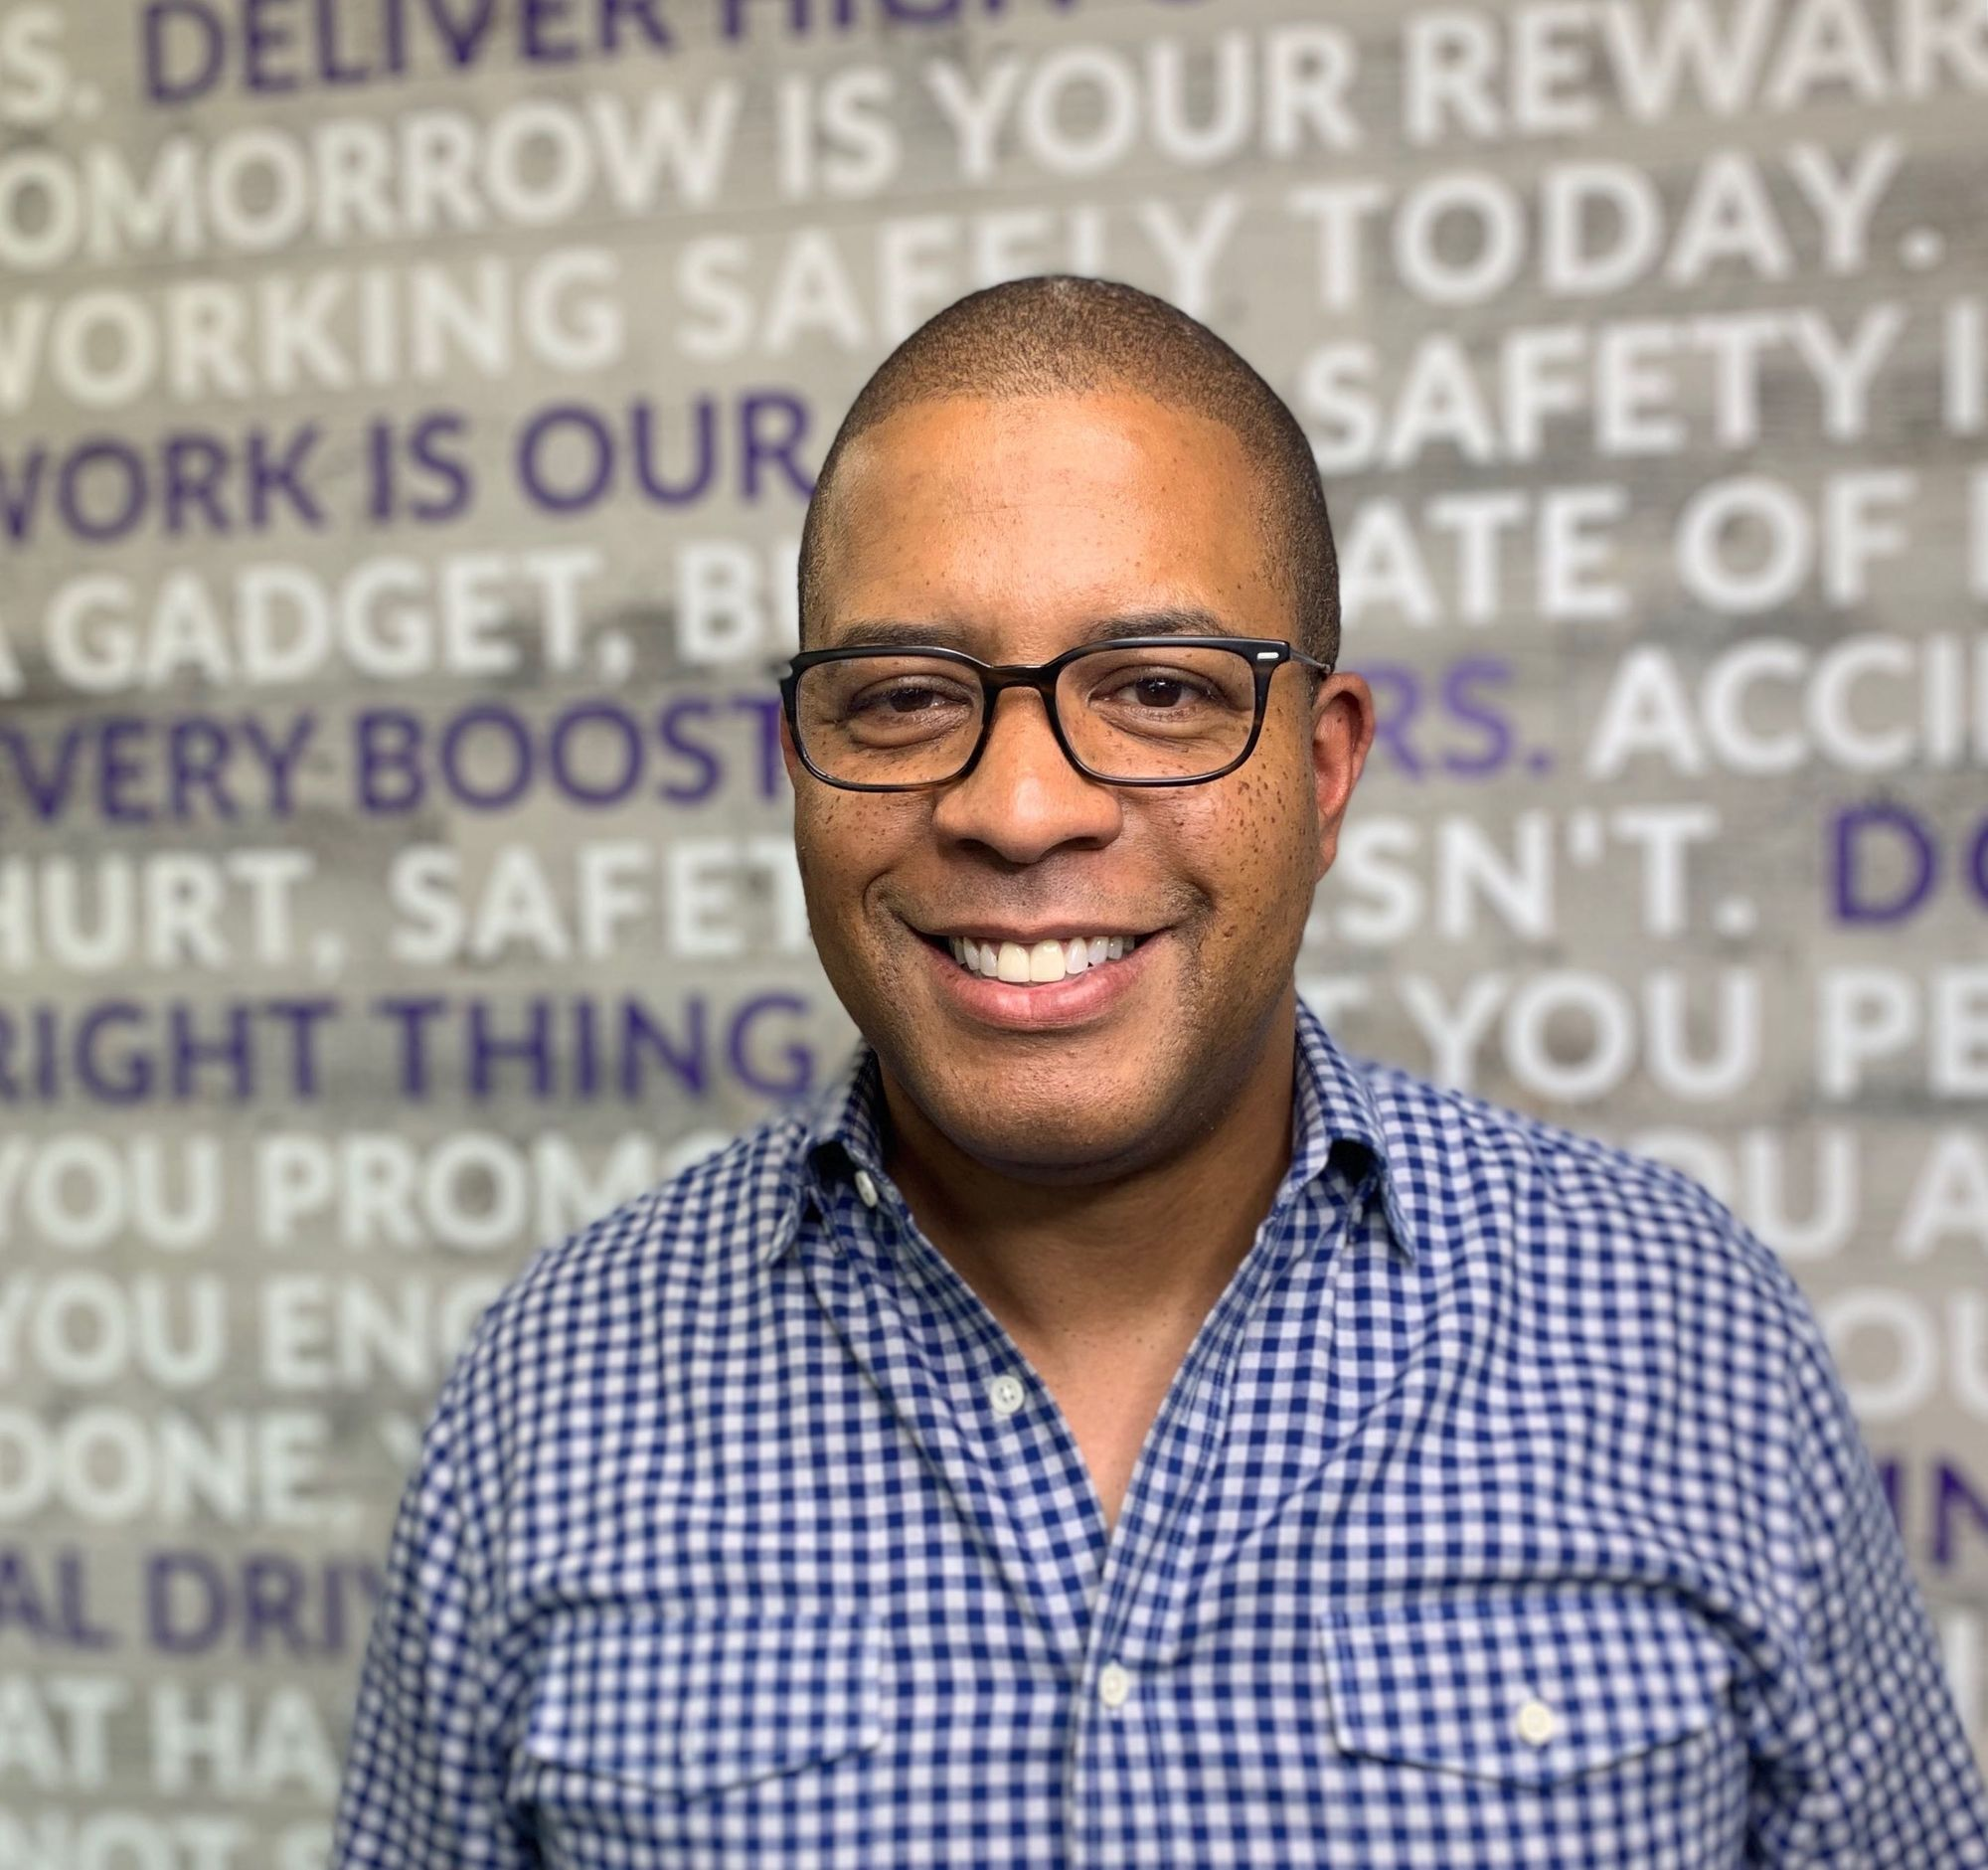 New Faces at Booster: Joe Okpaku joins as Chief Policy Officer!